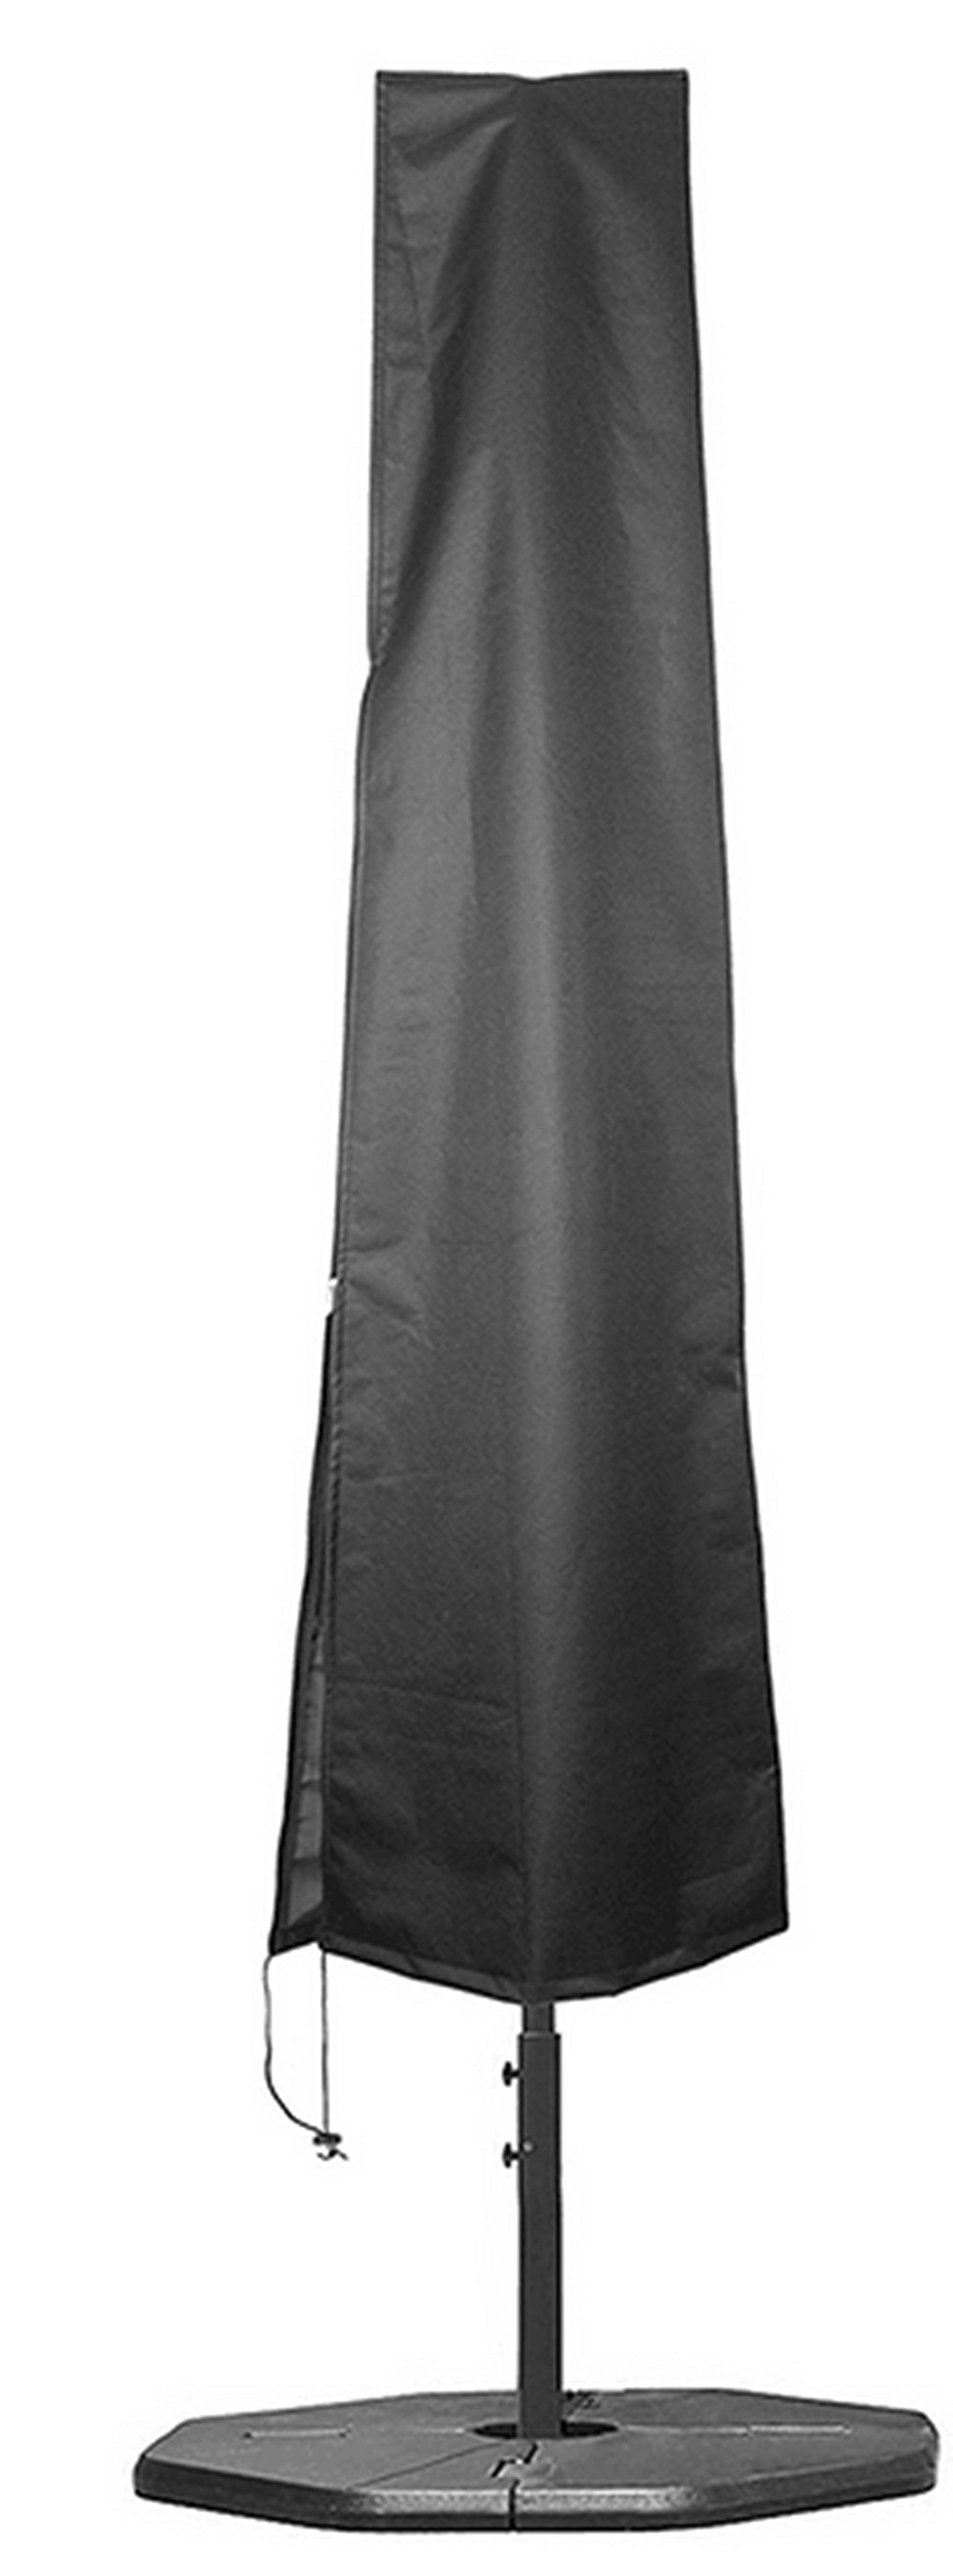 Hentex Outdoor Patio Umbrella Cover, PU Coating Eco Durable Waterproof, Soft Liner, Soft Liner, Drawstring with 2 Stoppers,Sewn-in Fibre Glass Rod for Easy Use,Parasol Canopy Protector (23.5''W×75''H)